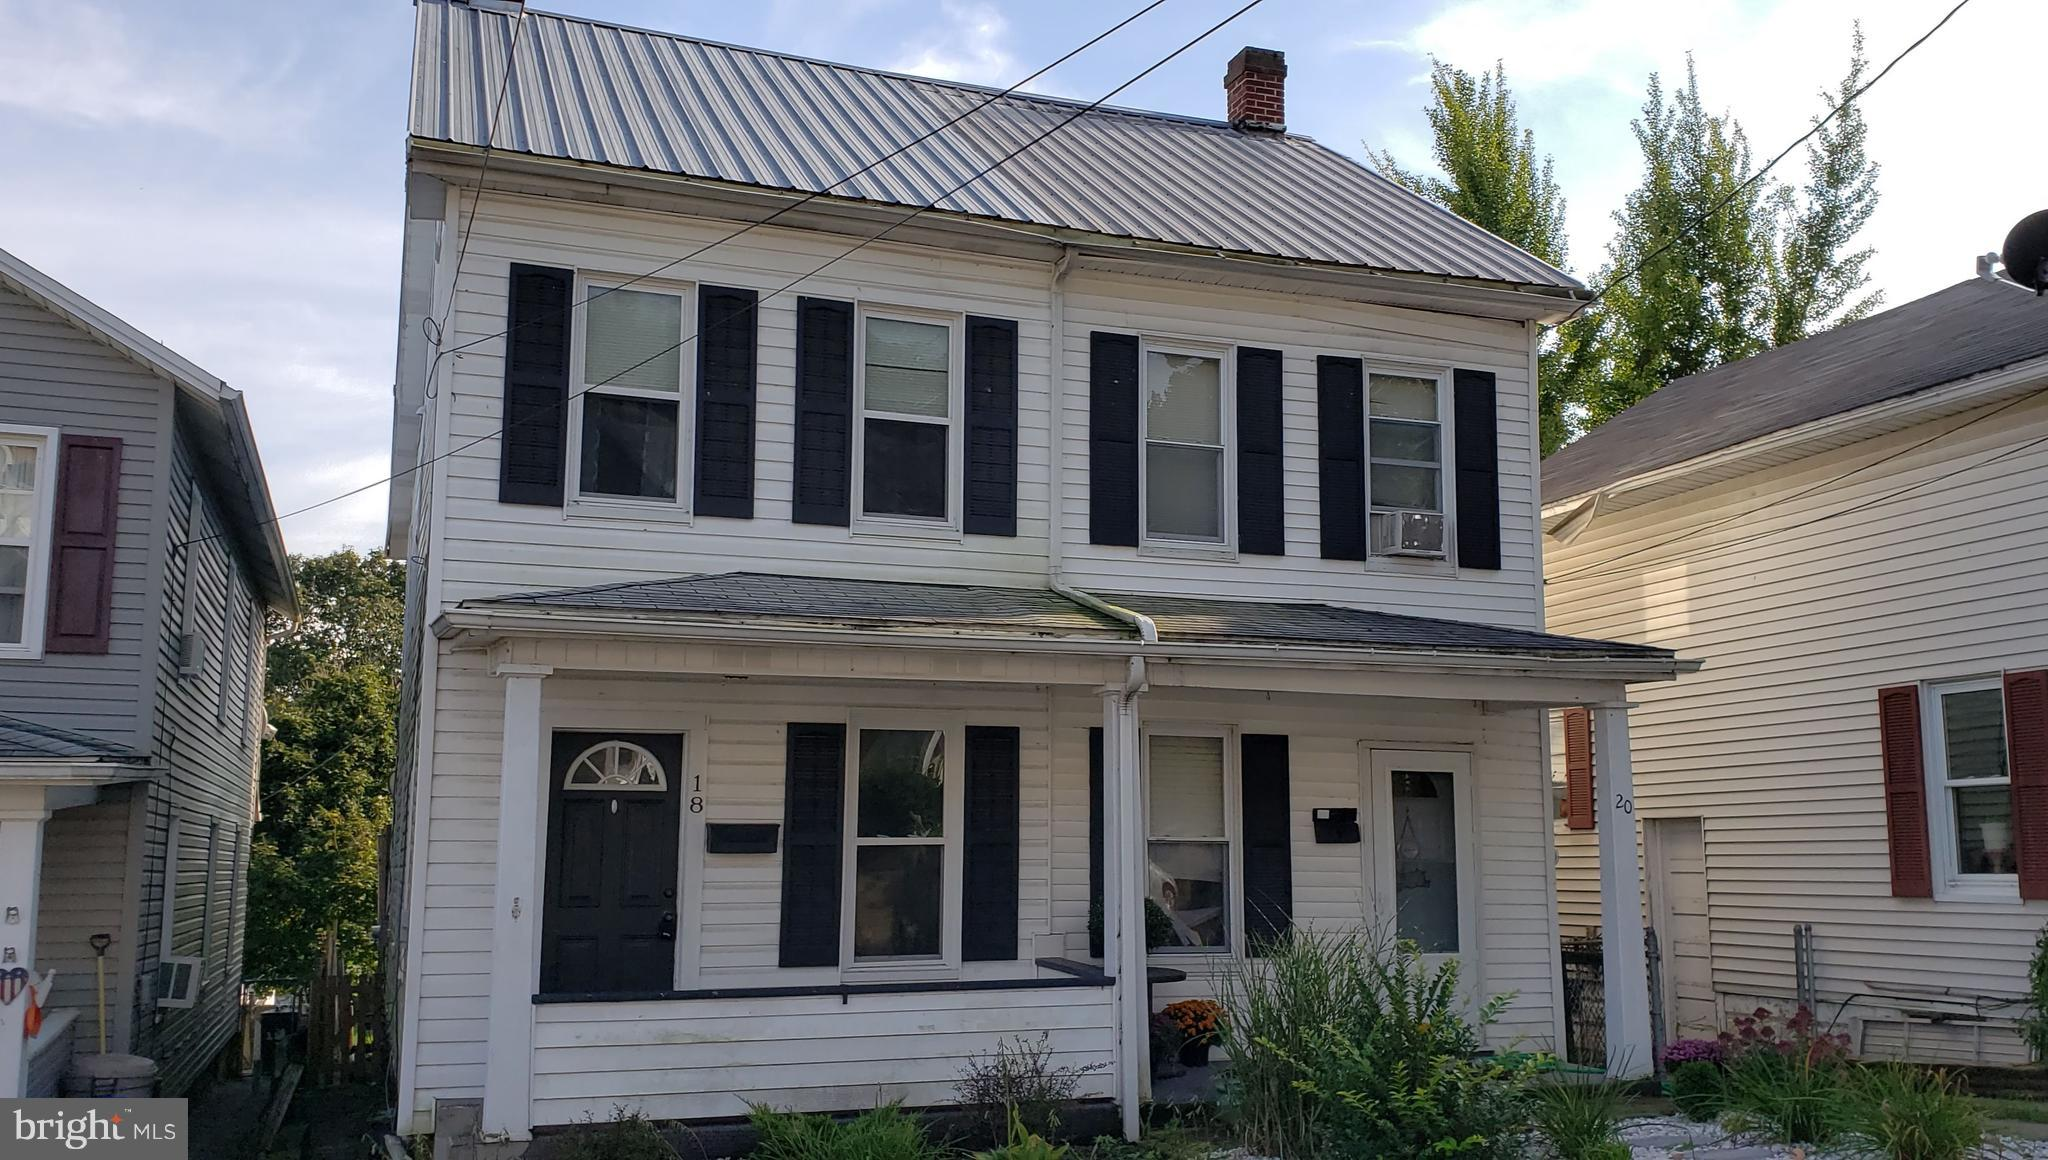 18 WOODS LANE, LEWISTOWN, PA 17044